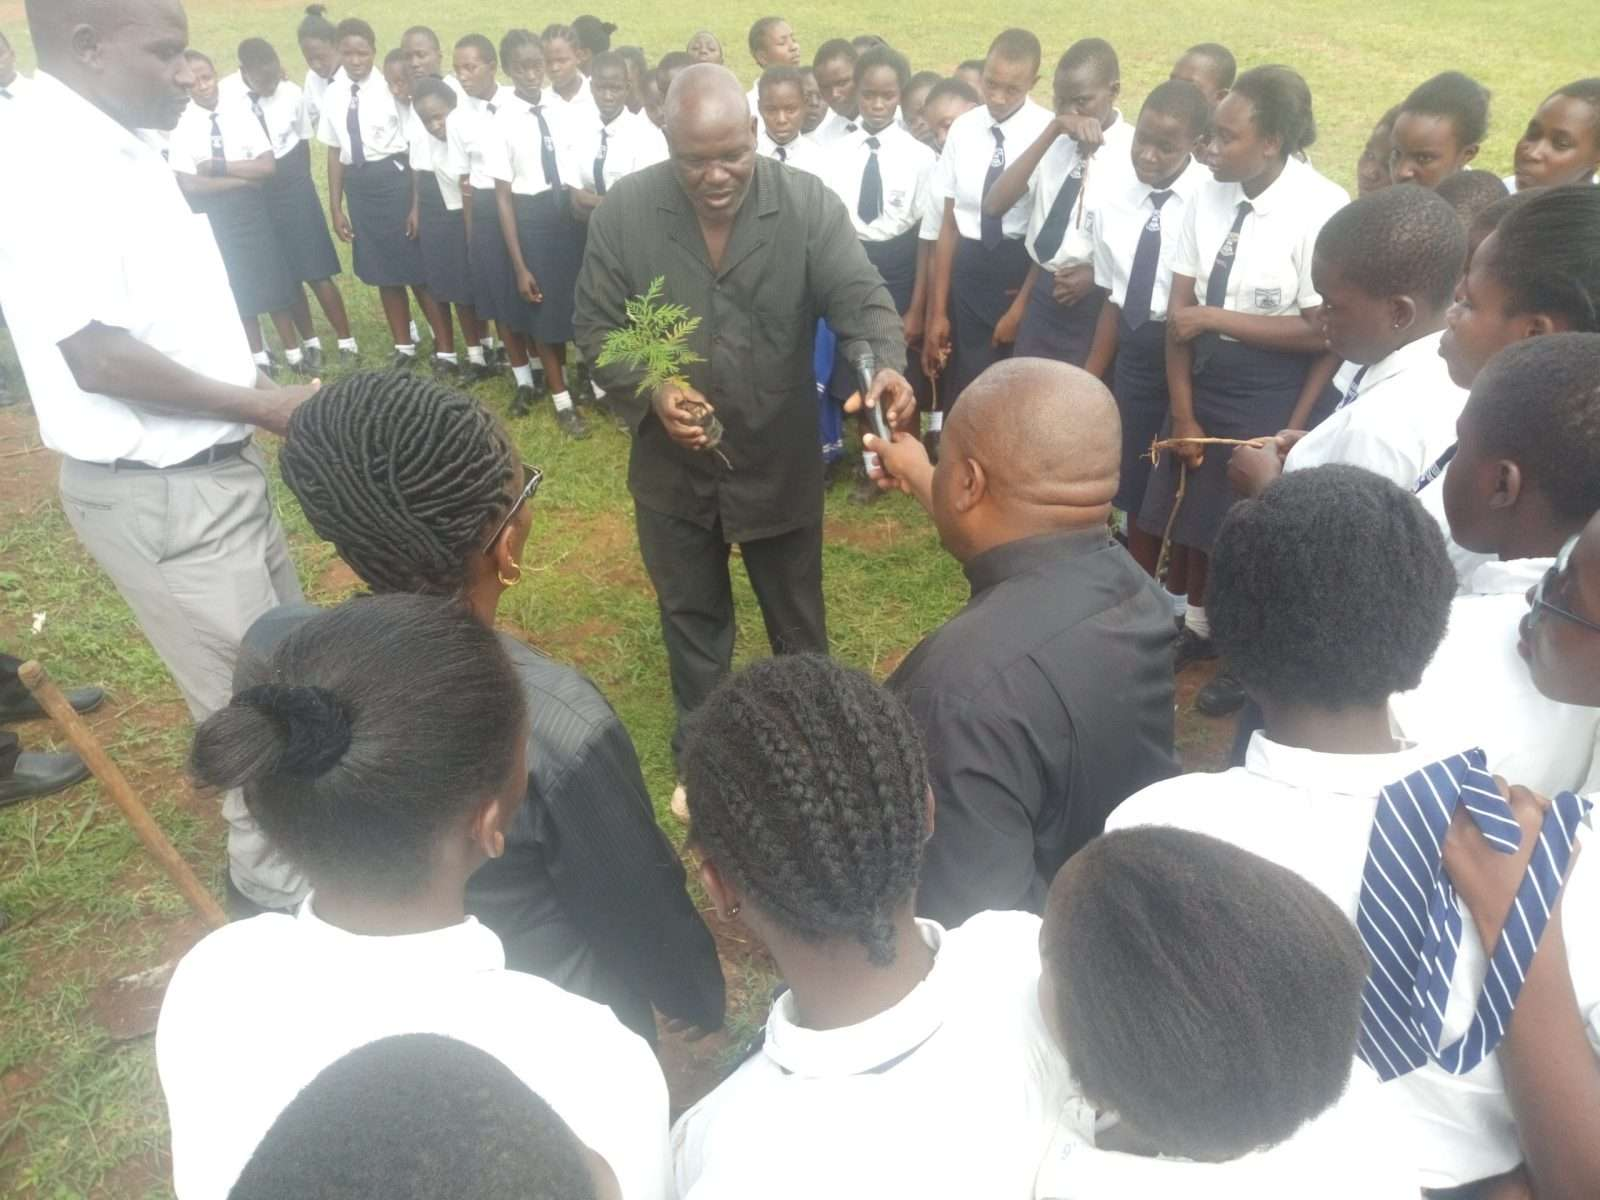 ARCHBISHOP NJENGA GIRLS' HIGH